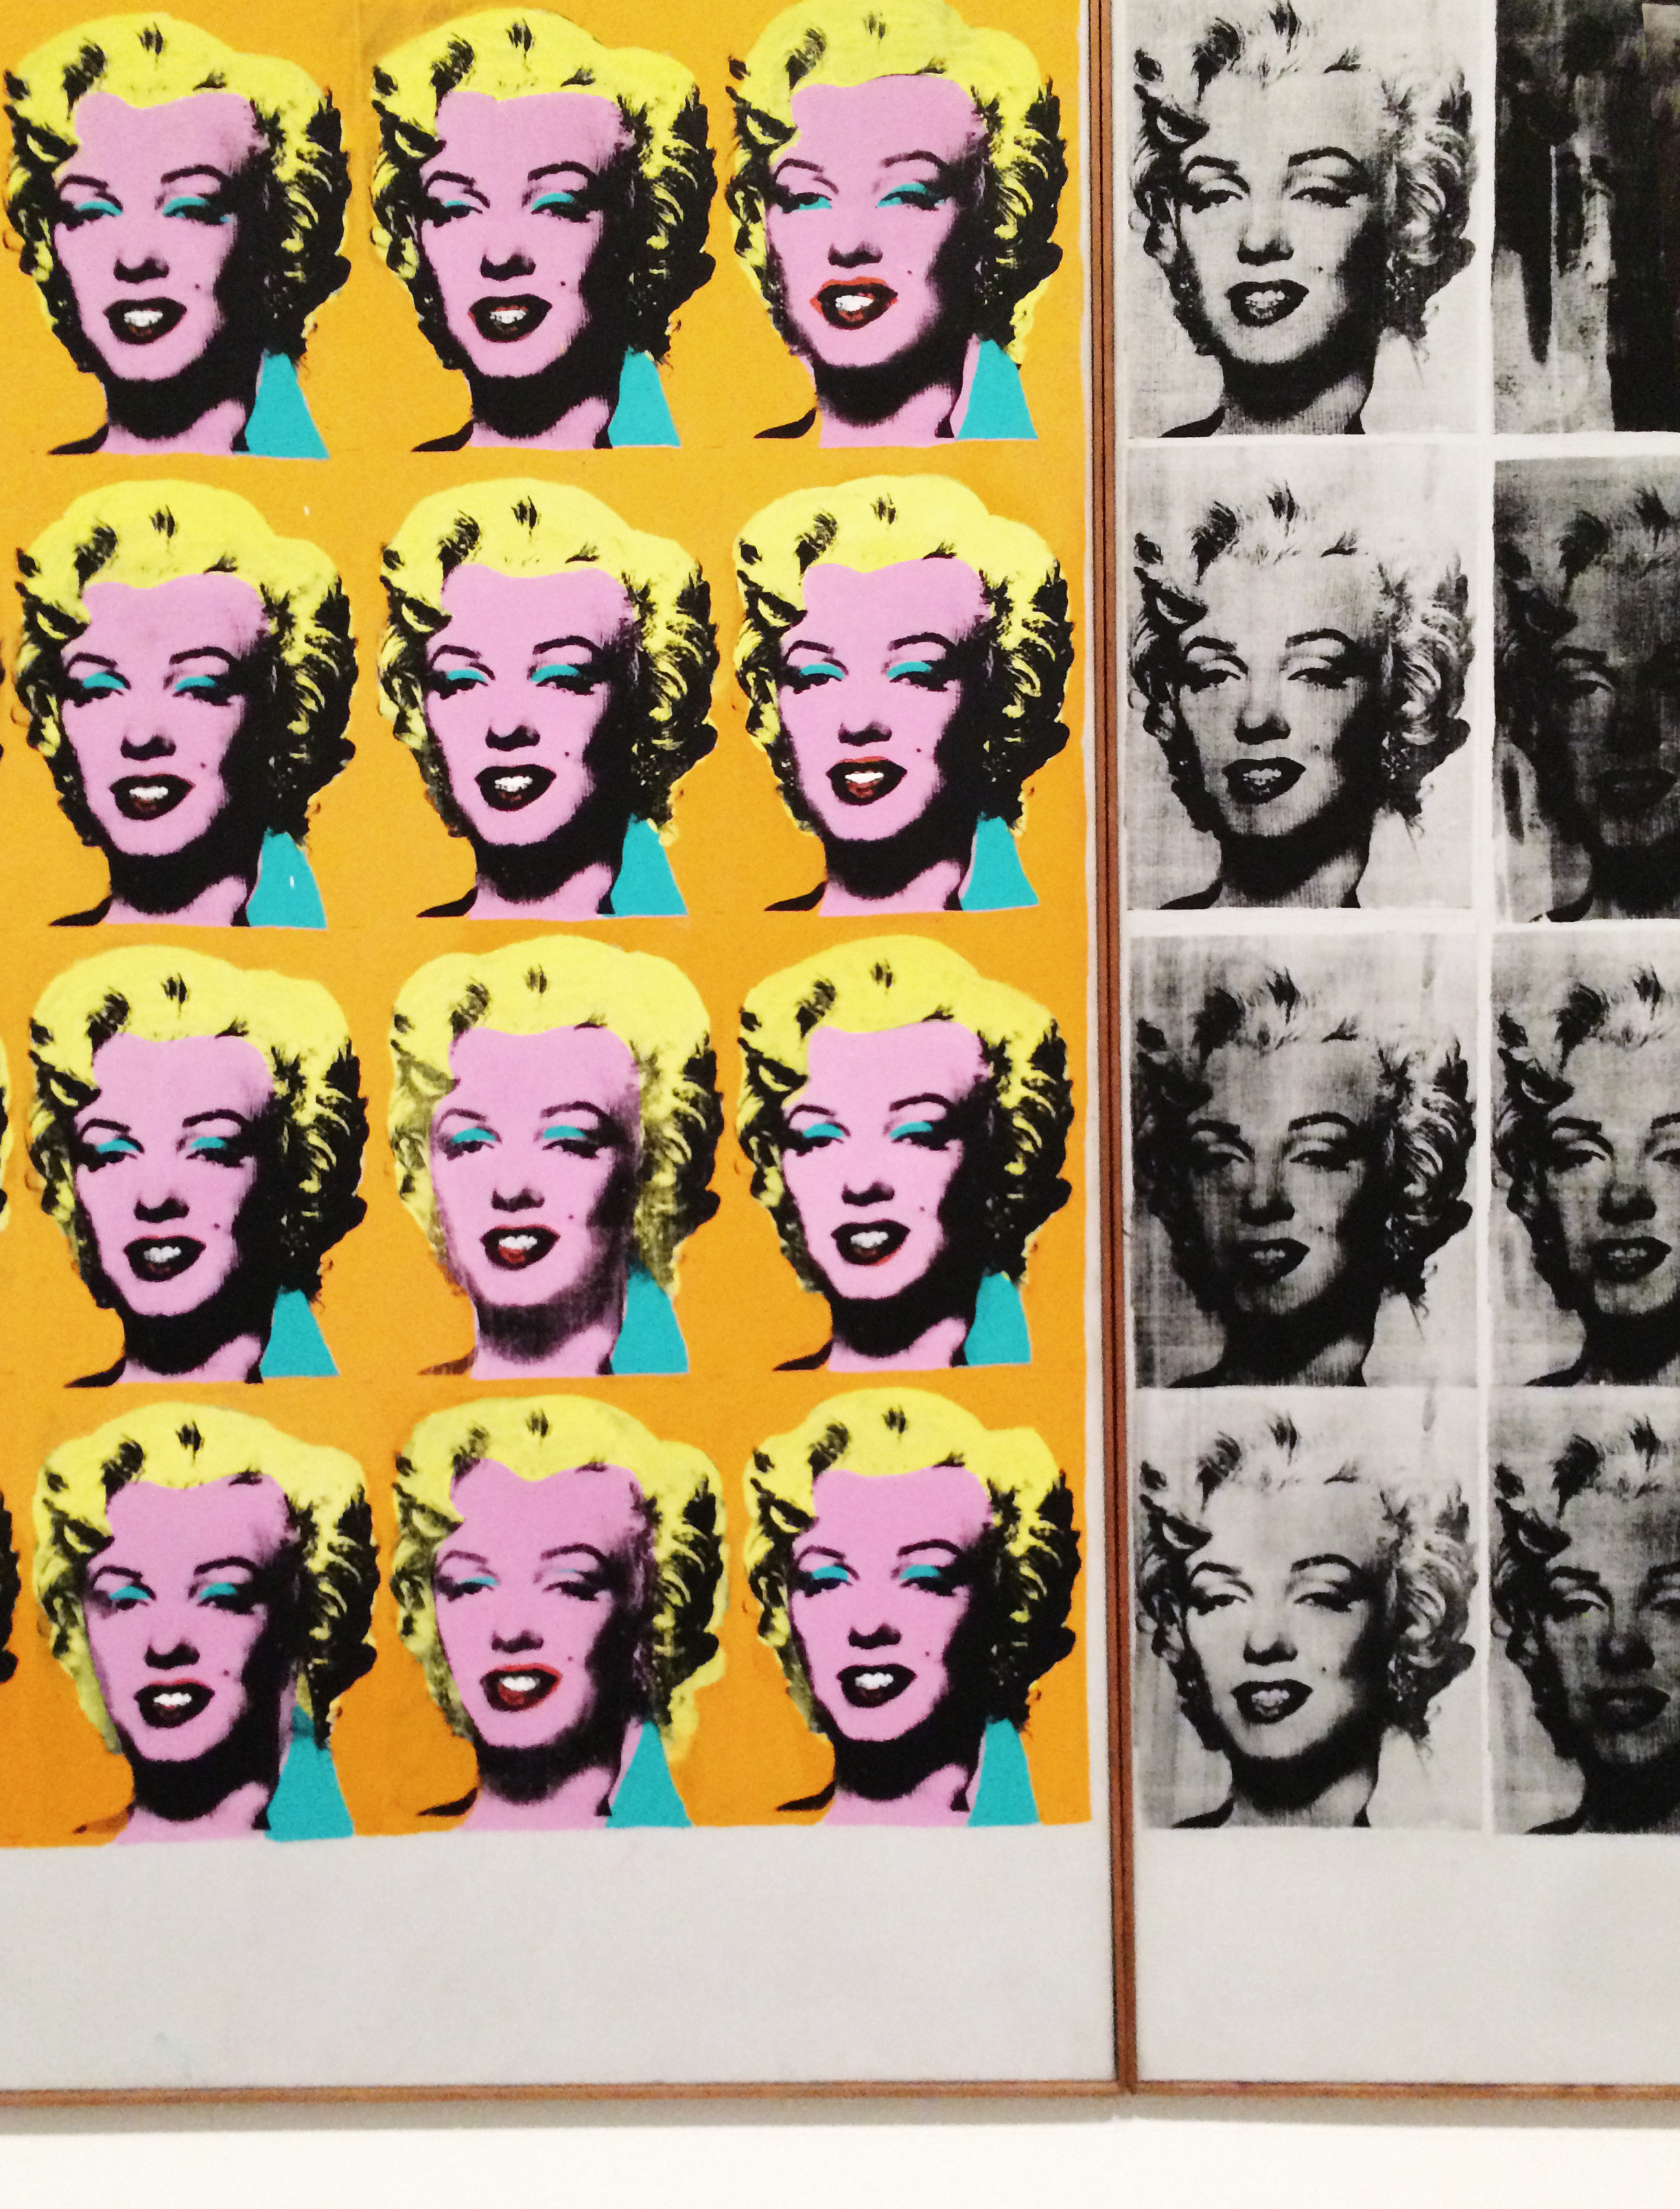 Andy Warhol,  Marilyn Diptych , 1962. Tate Modern Museum. Photo by Sabina Radeva 2015.